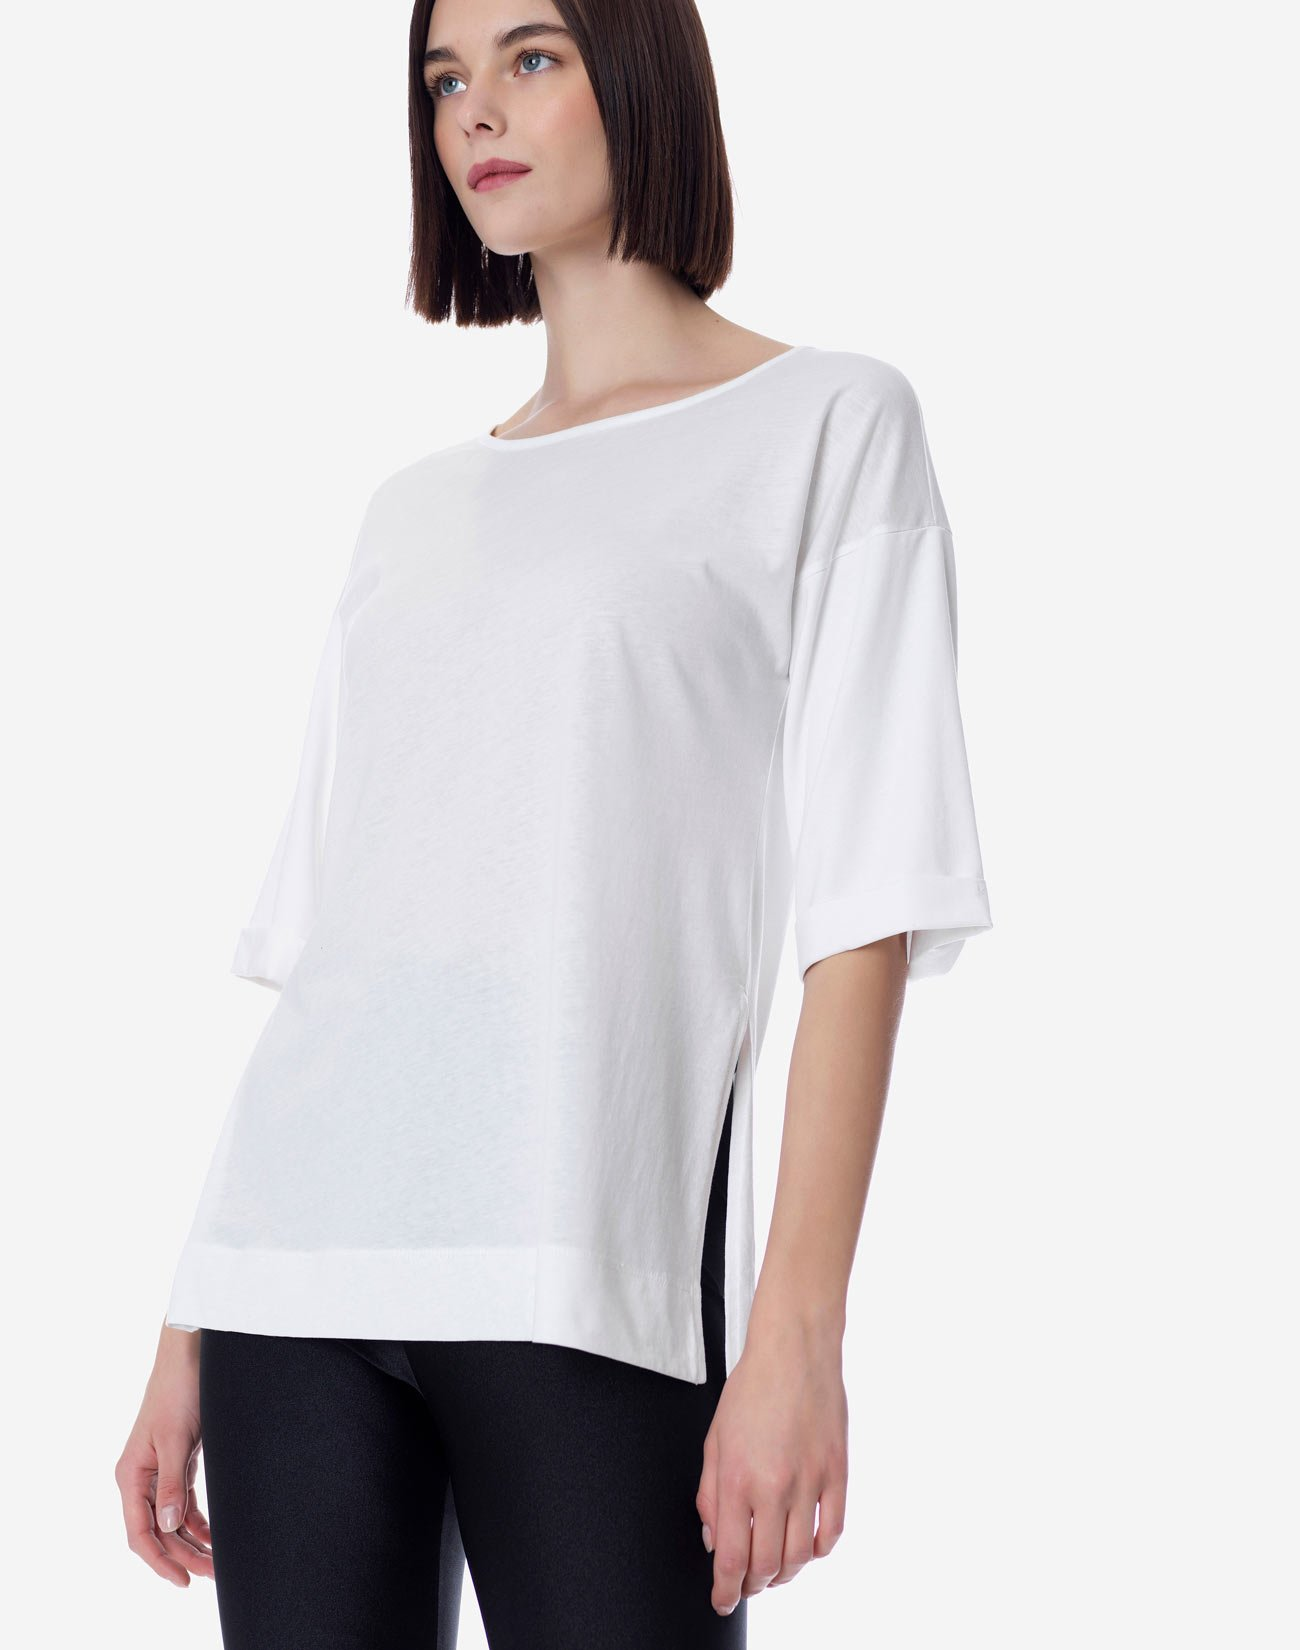 Organic cotton top with openings